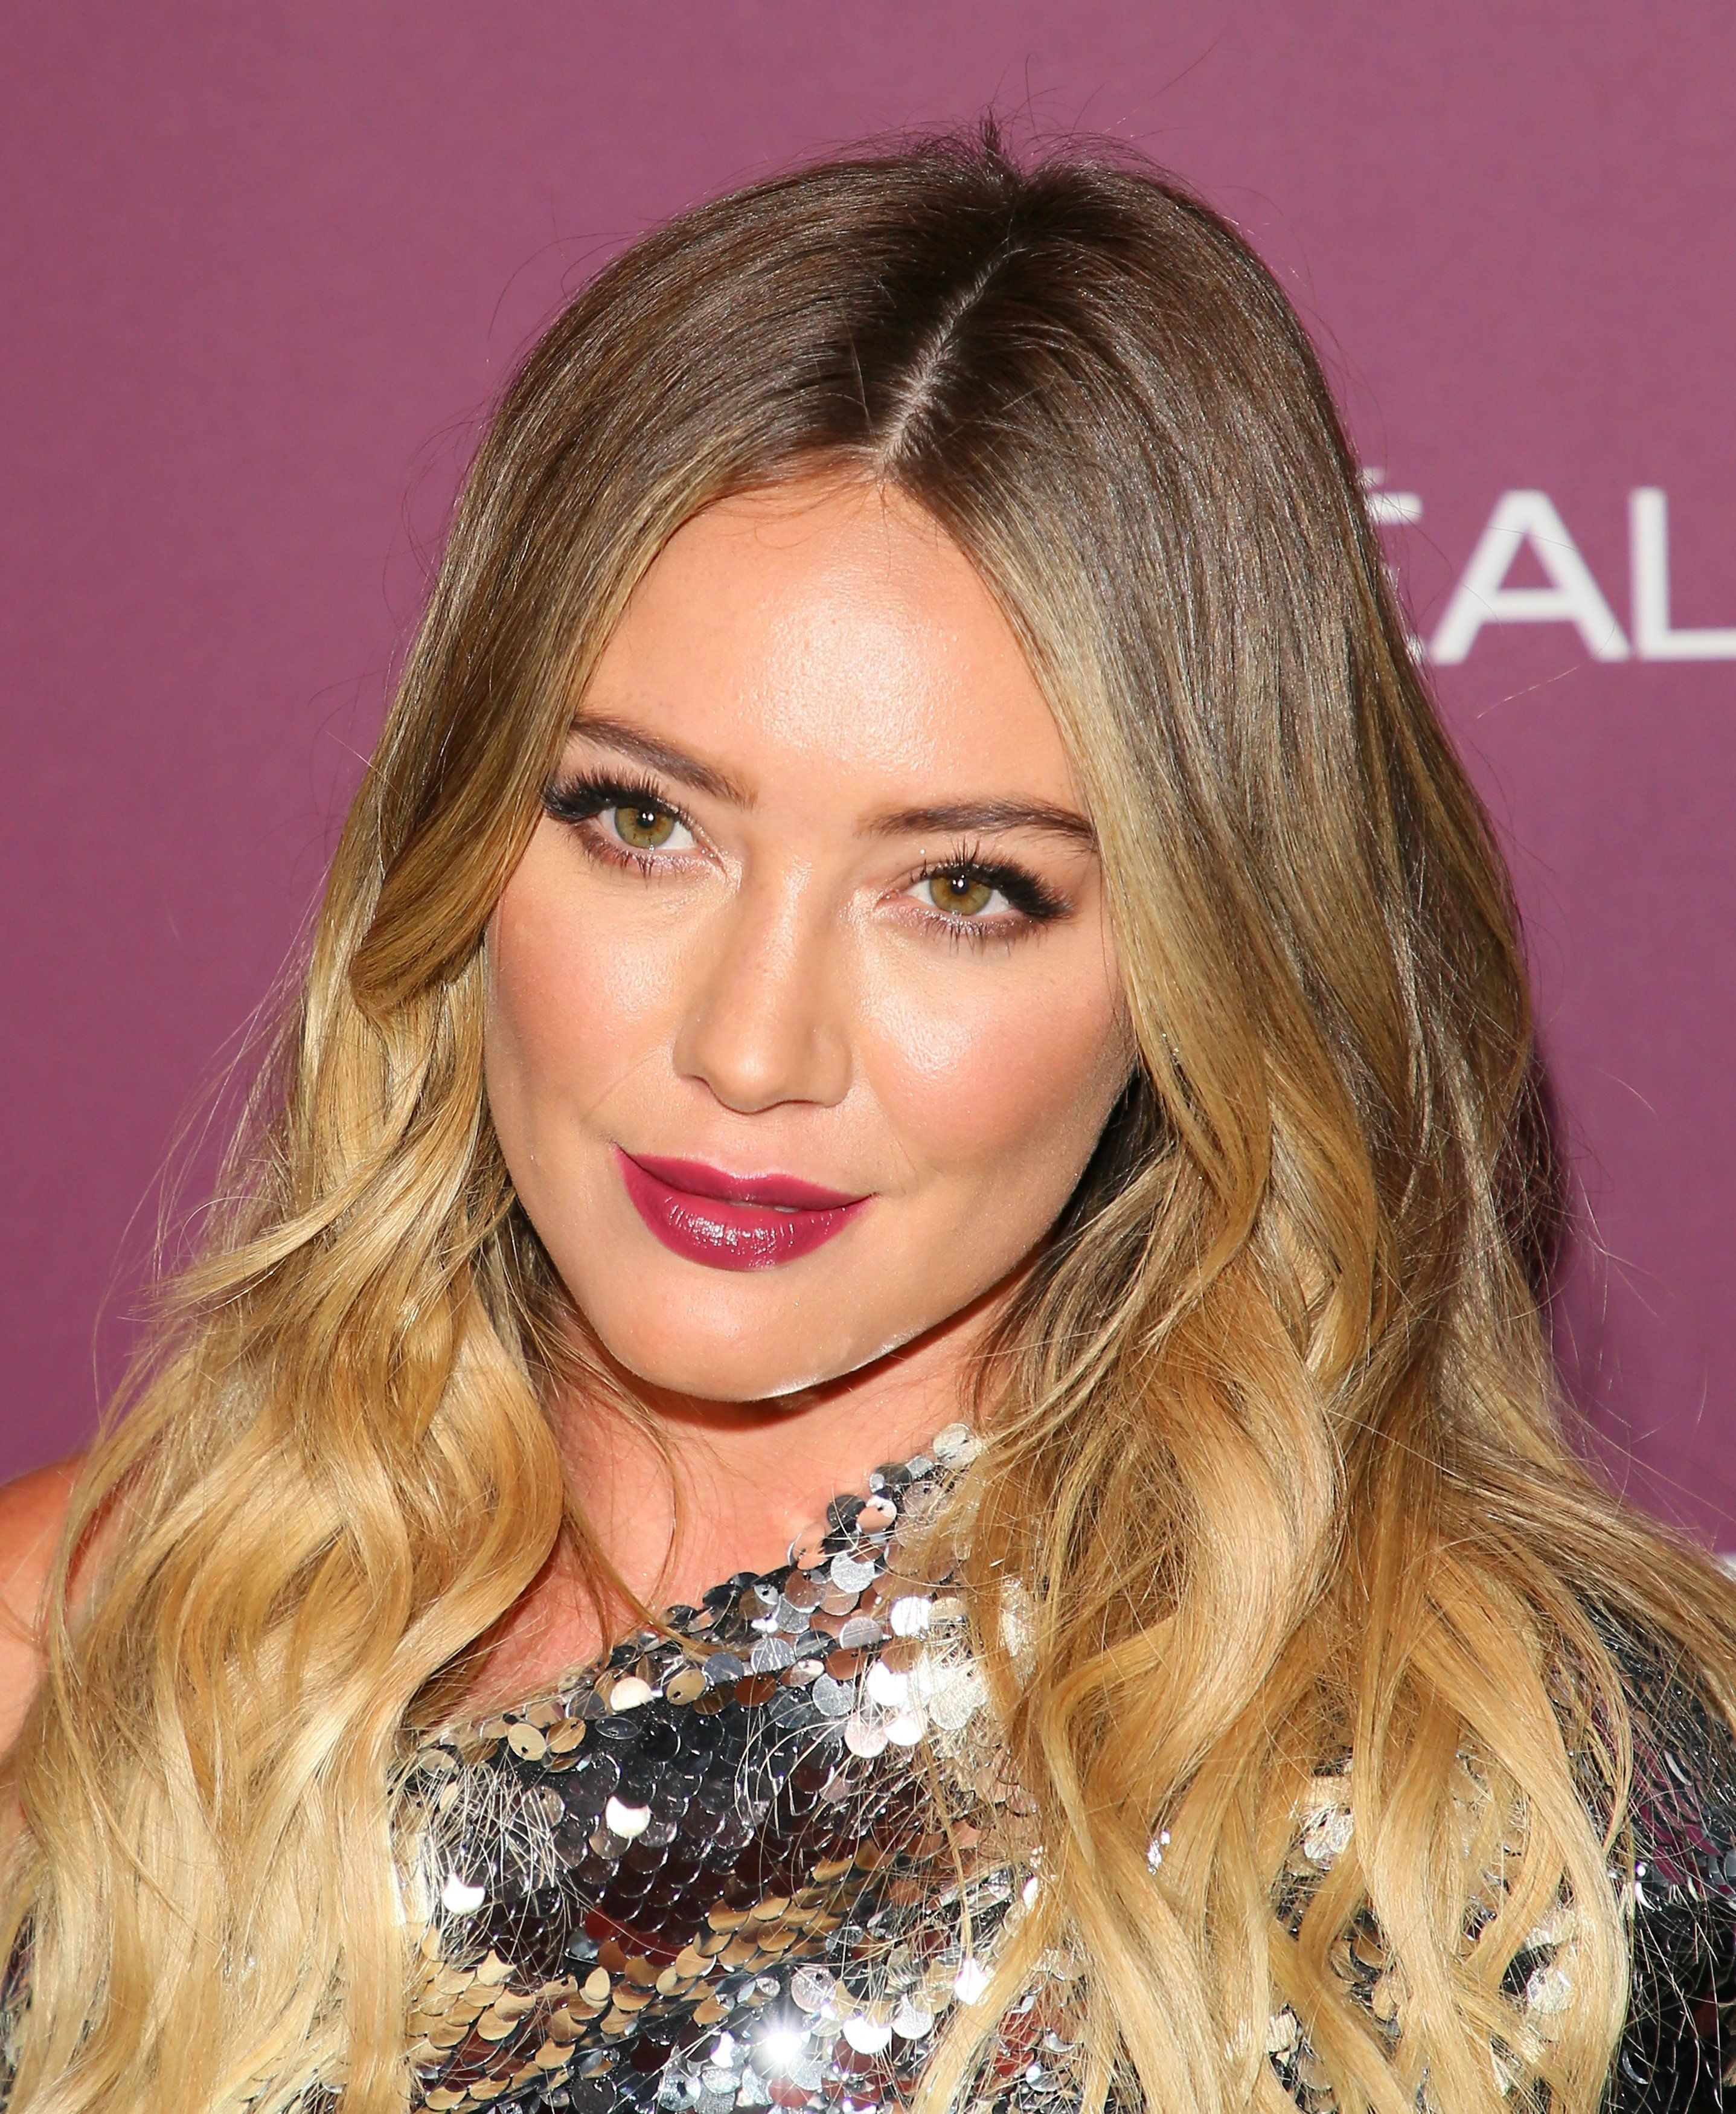 Hilary Duff Publicly Drags Neighbor Who Keeps Her Up 'All Night'